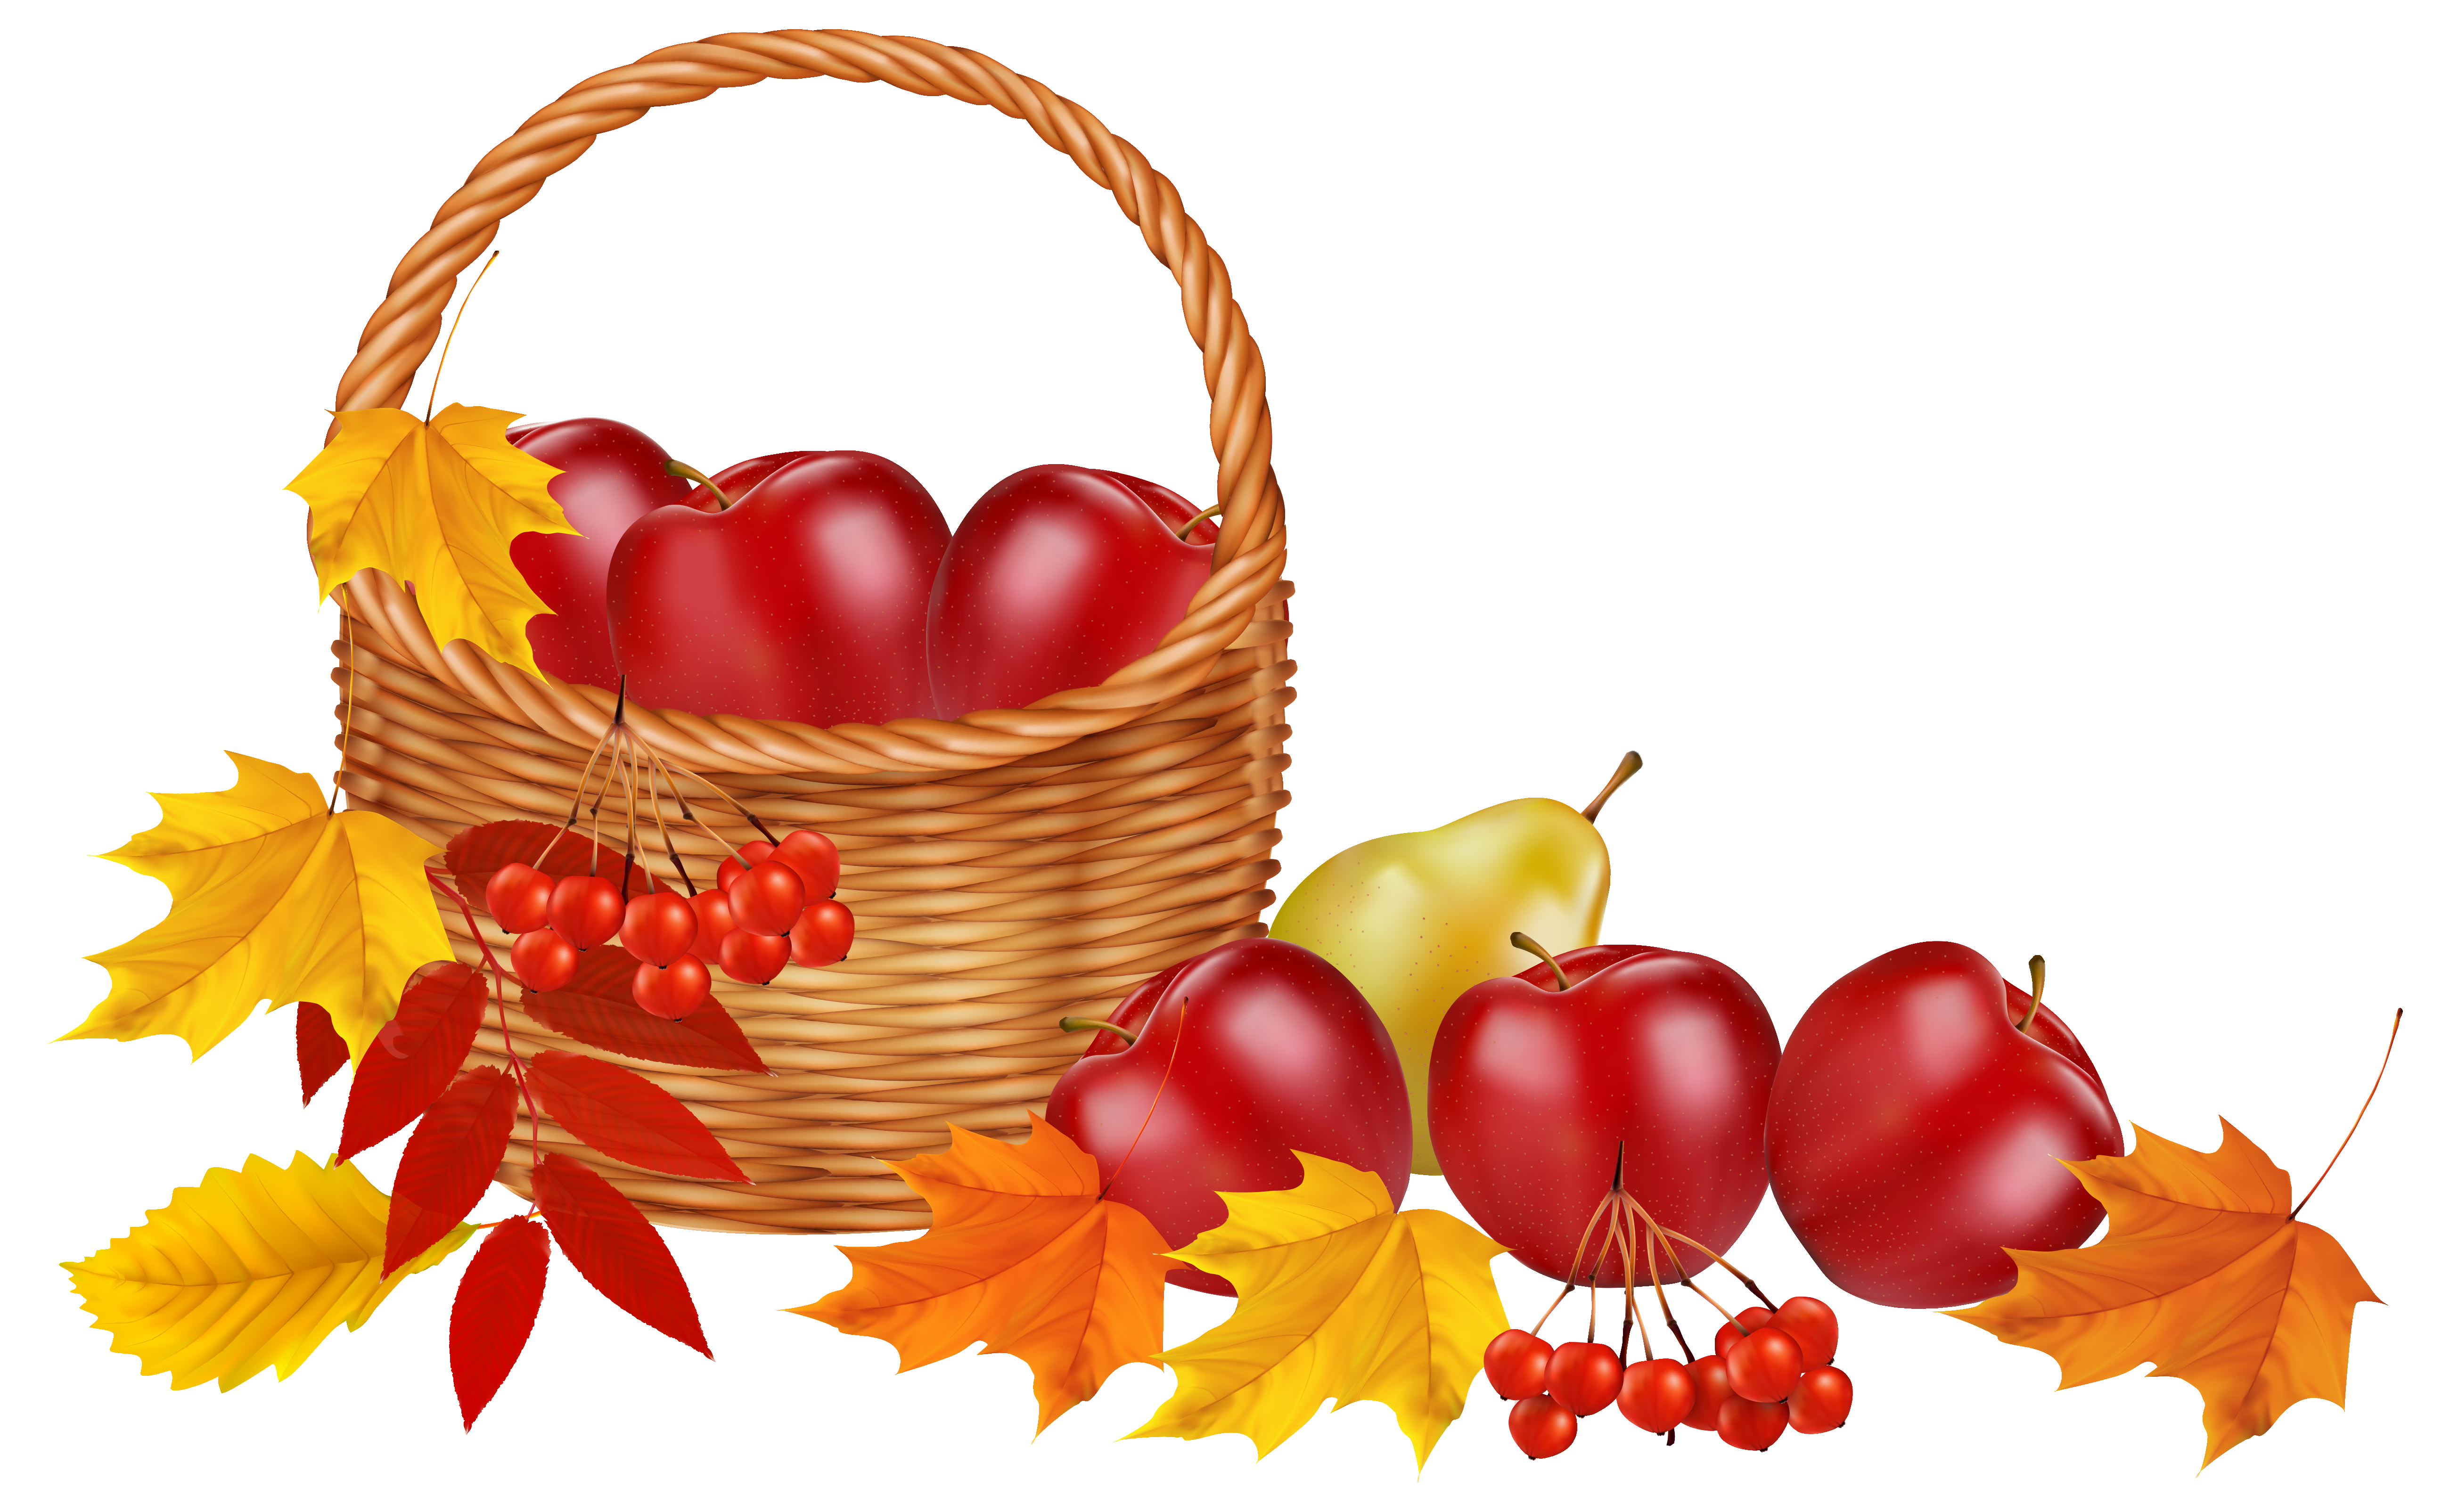 5199x3209 Images Of Fall Clip Art